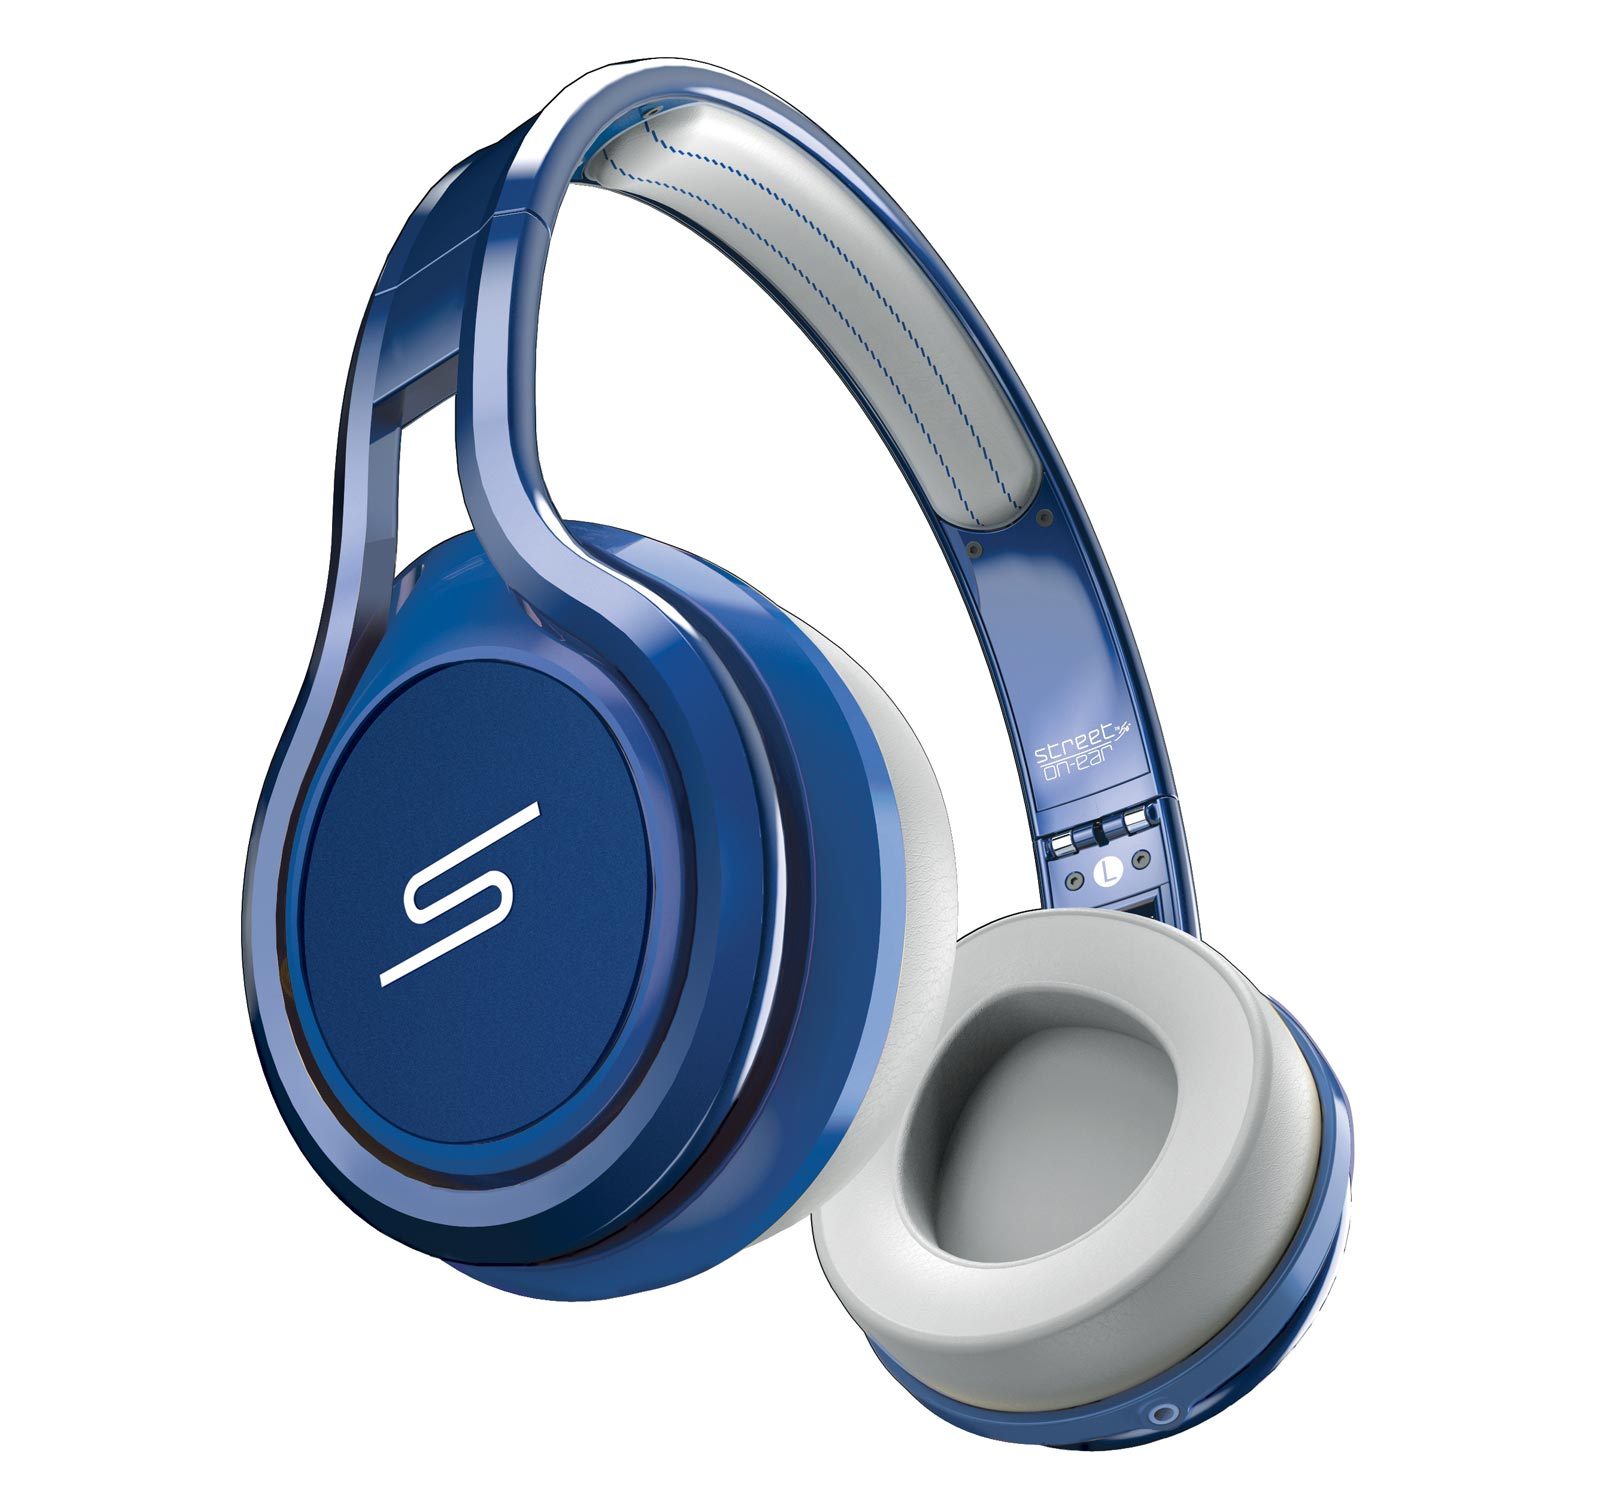 SMS Audio Street by 50 Cent Wired On-Ear Blue - Open Box Headphones